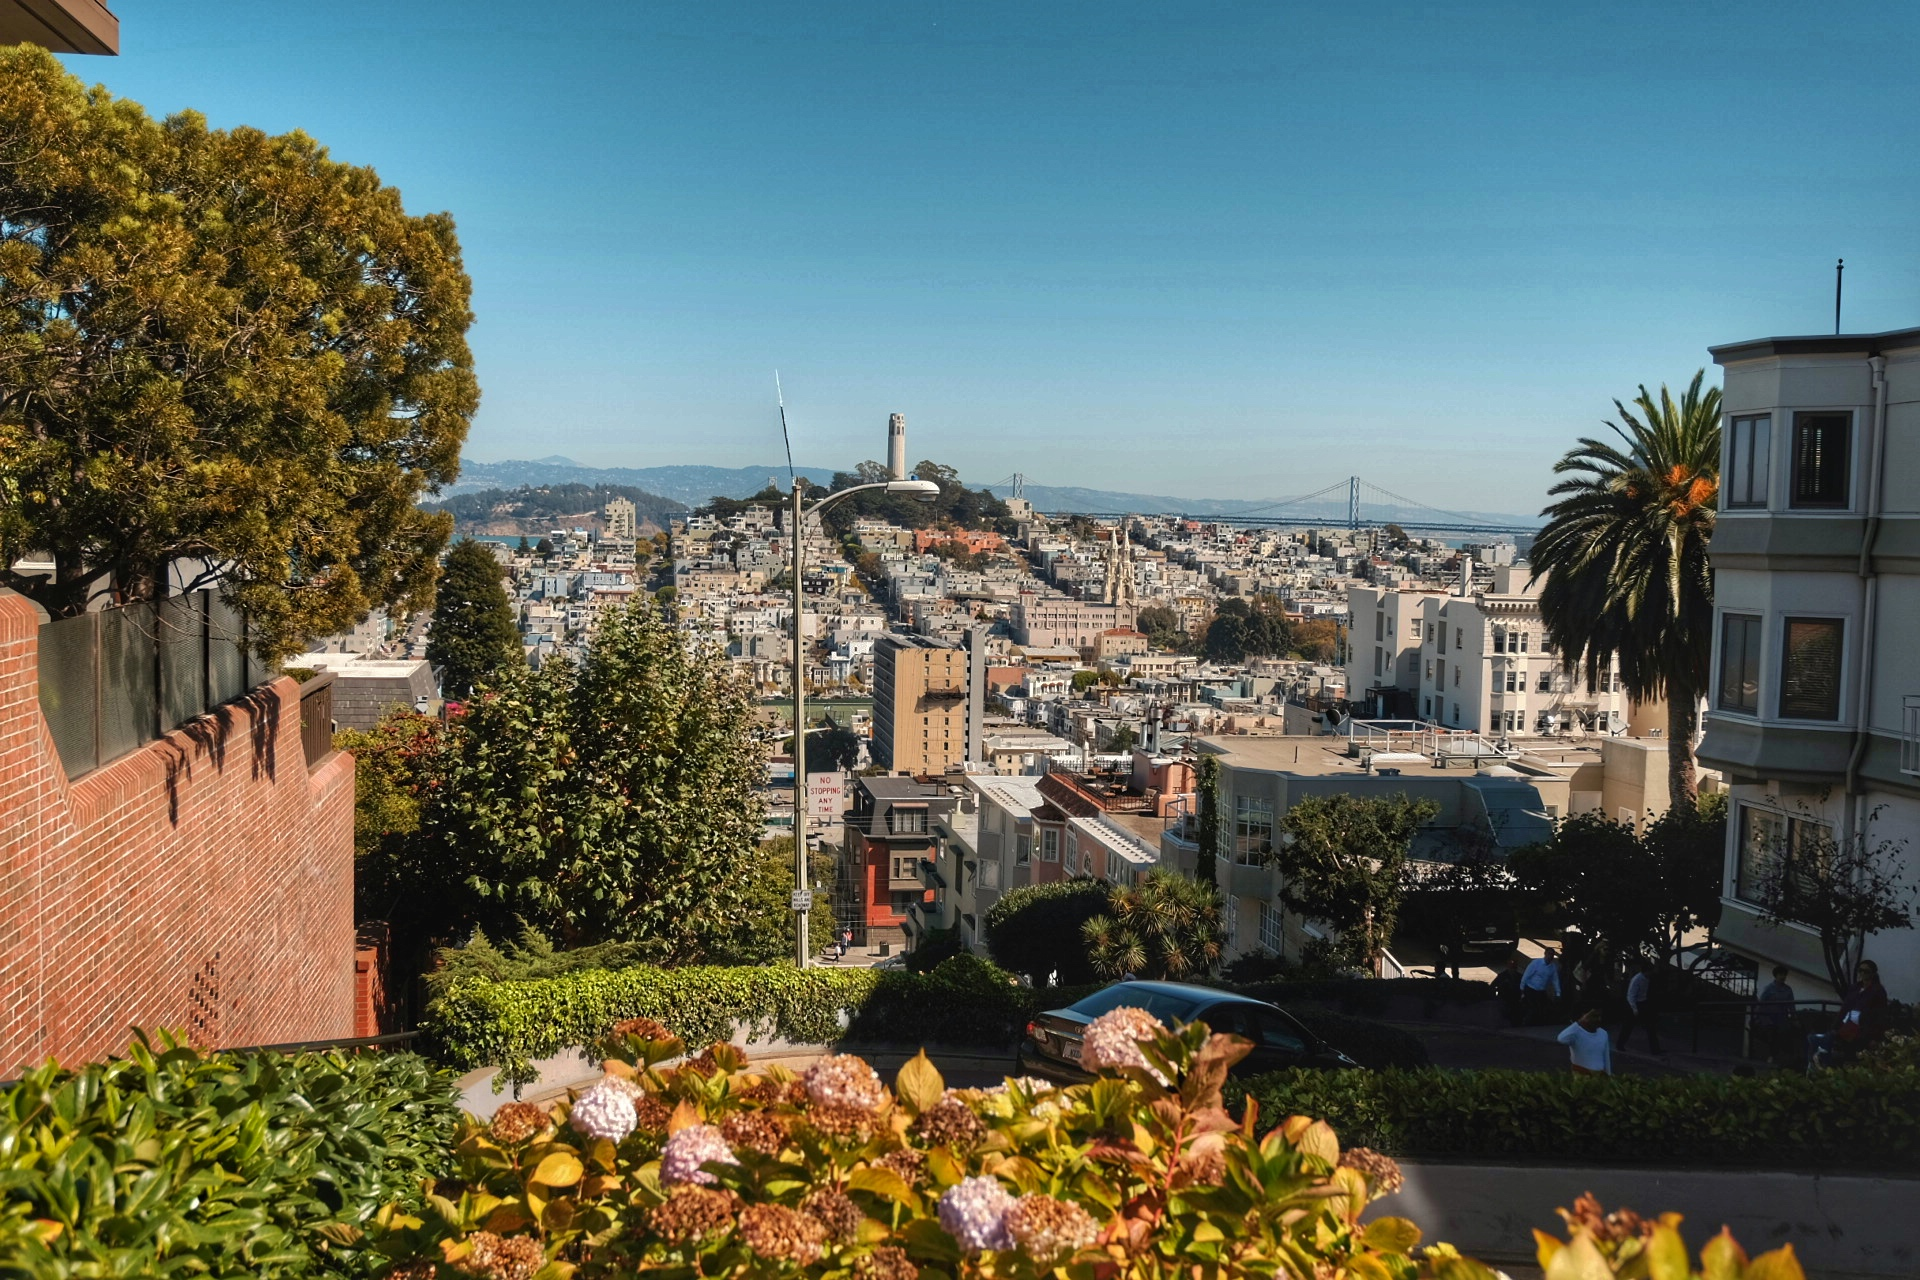 View of the city from Nob Hill.